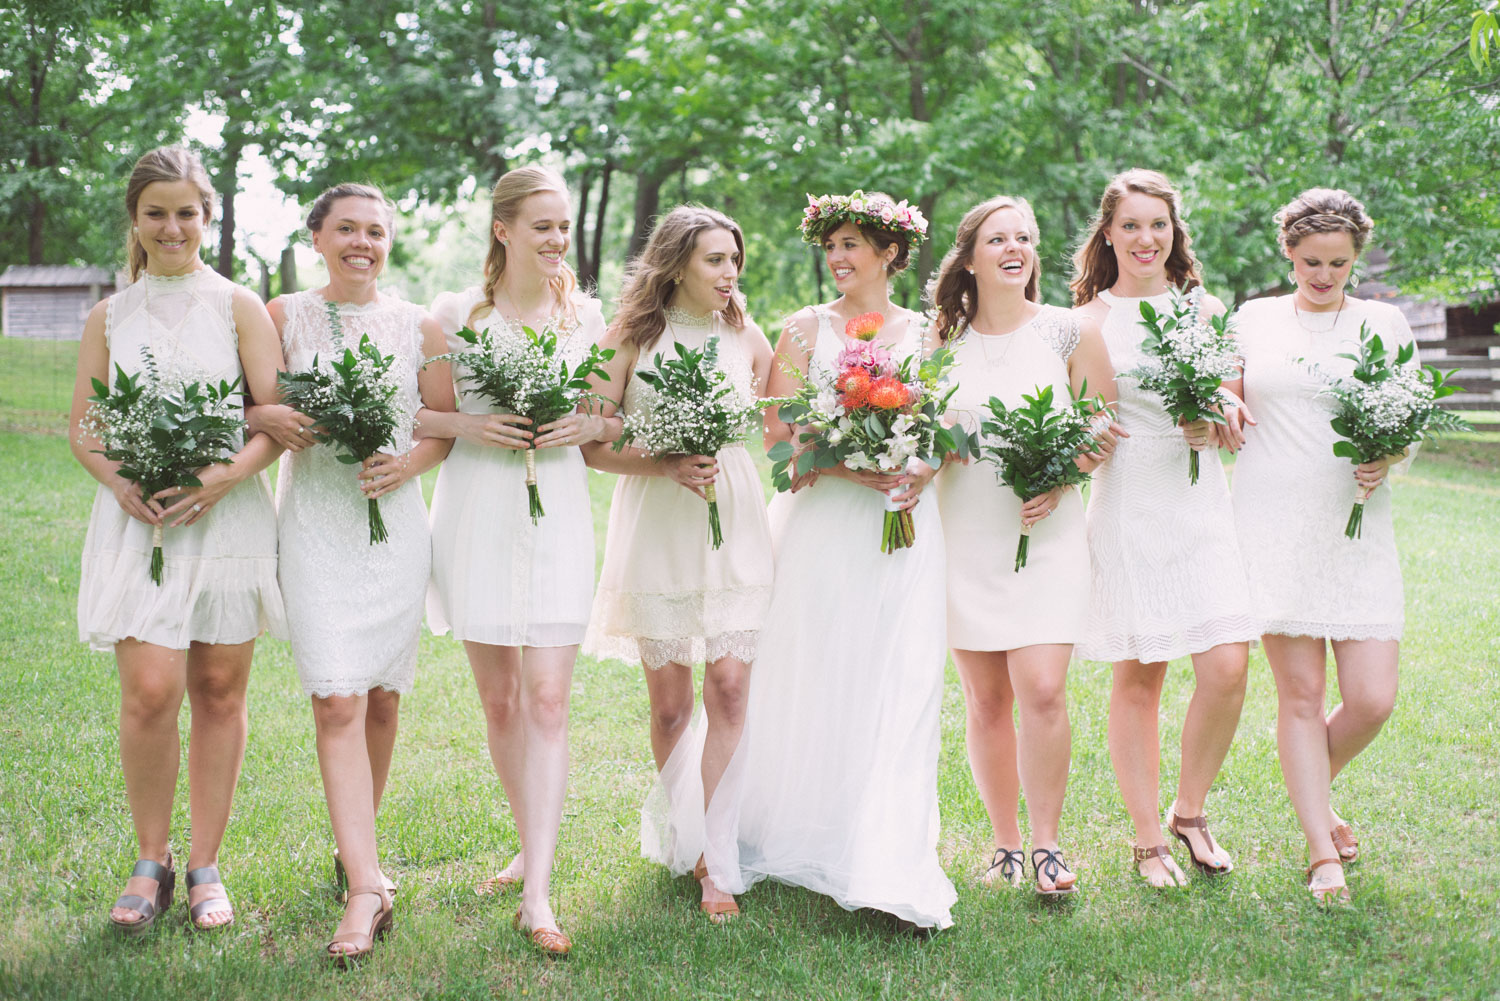 Atlanta-Wedding-Photographer-LeahAndMark-040